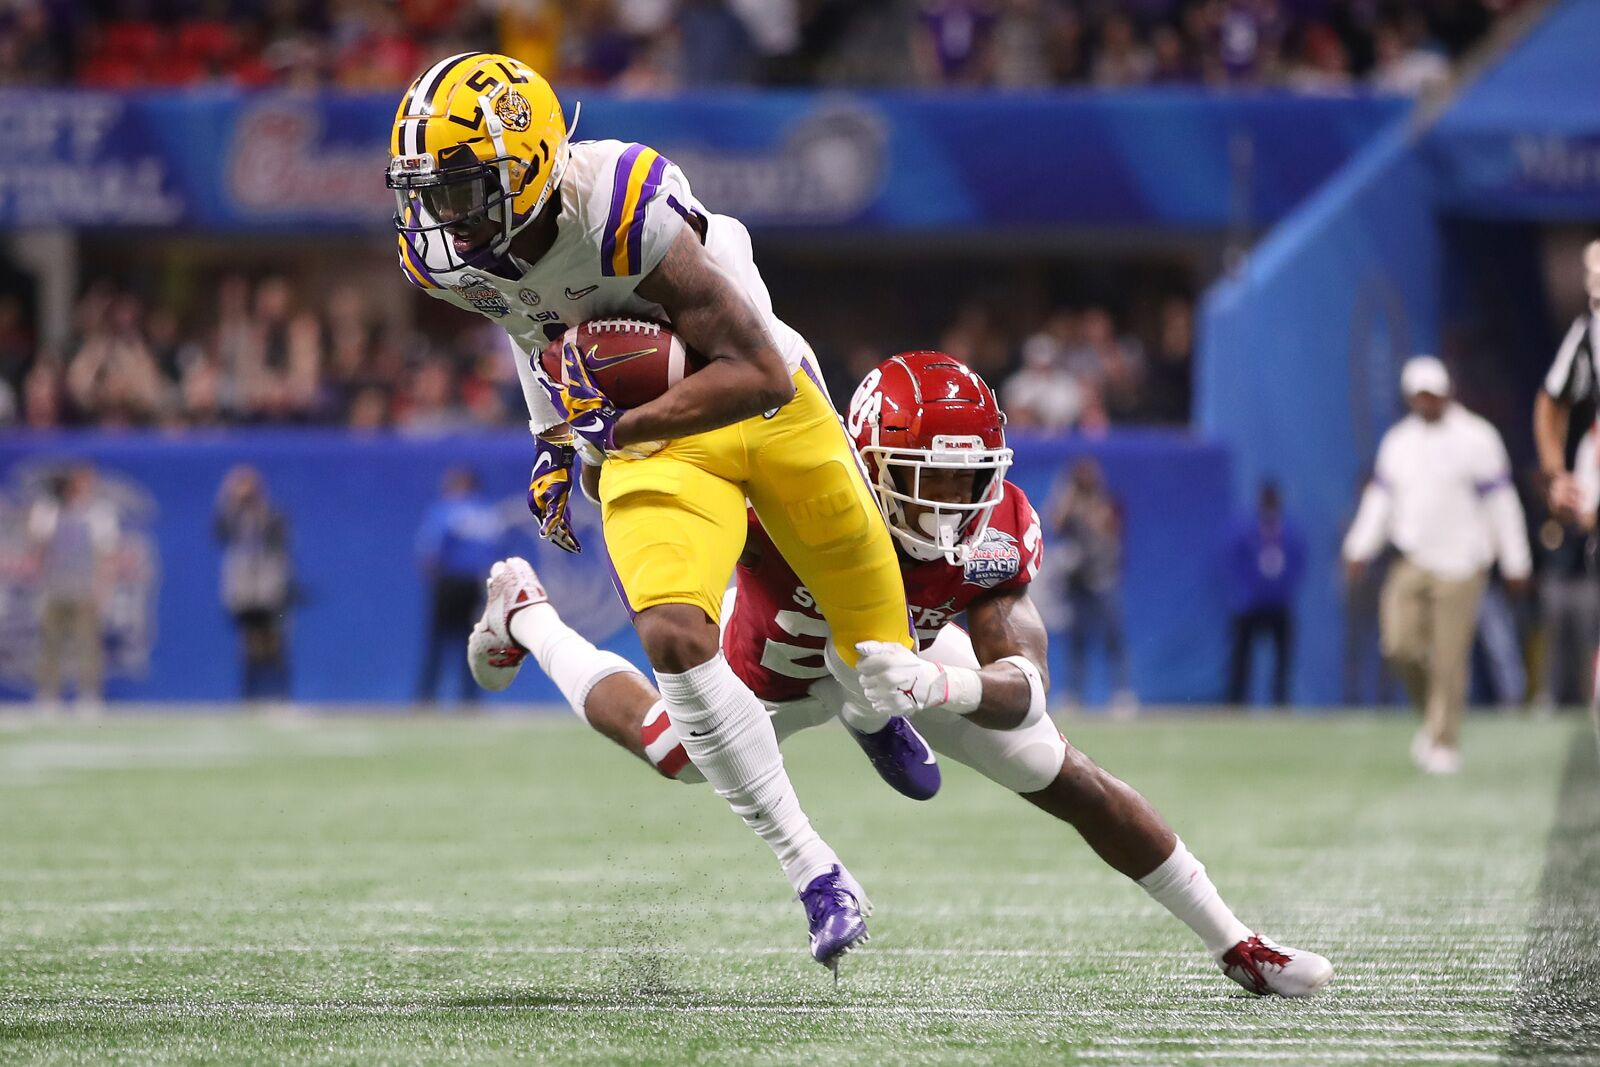 LSU Football: There won't be any special treatment for star players